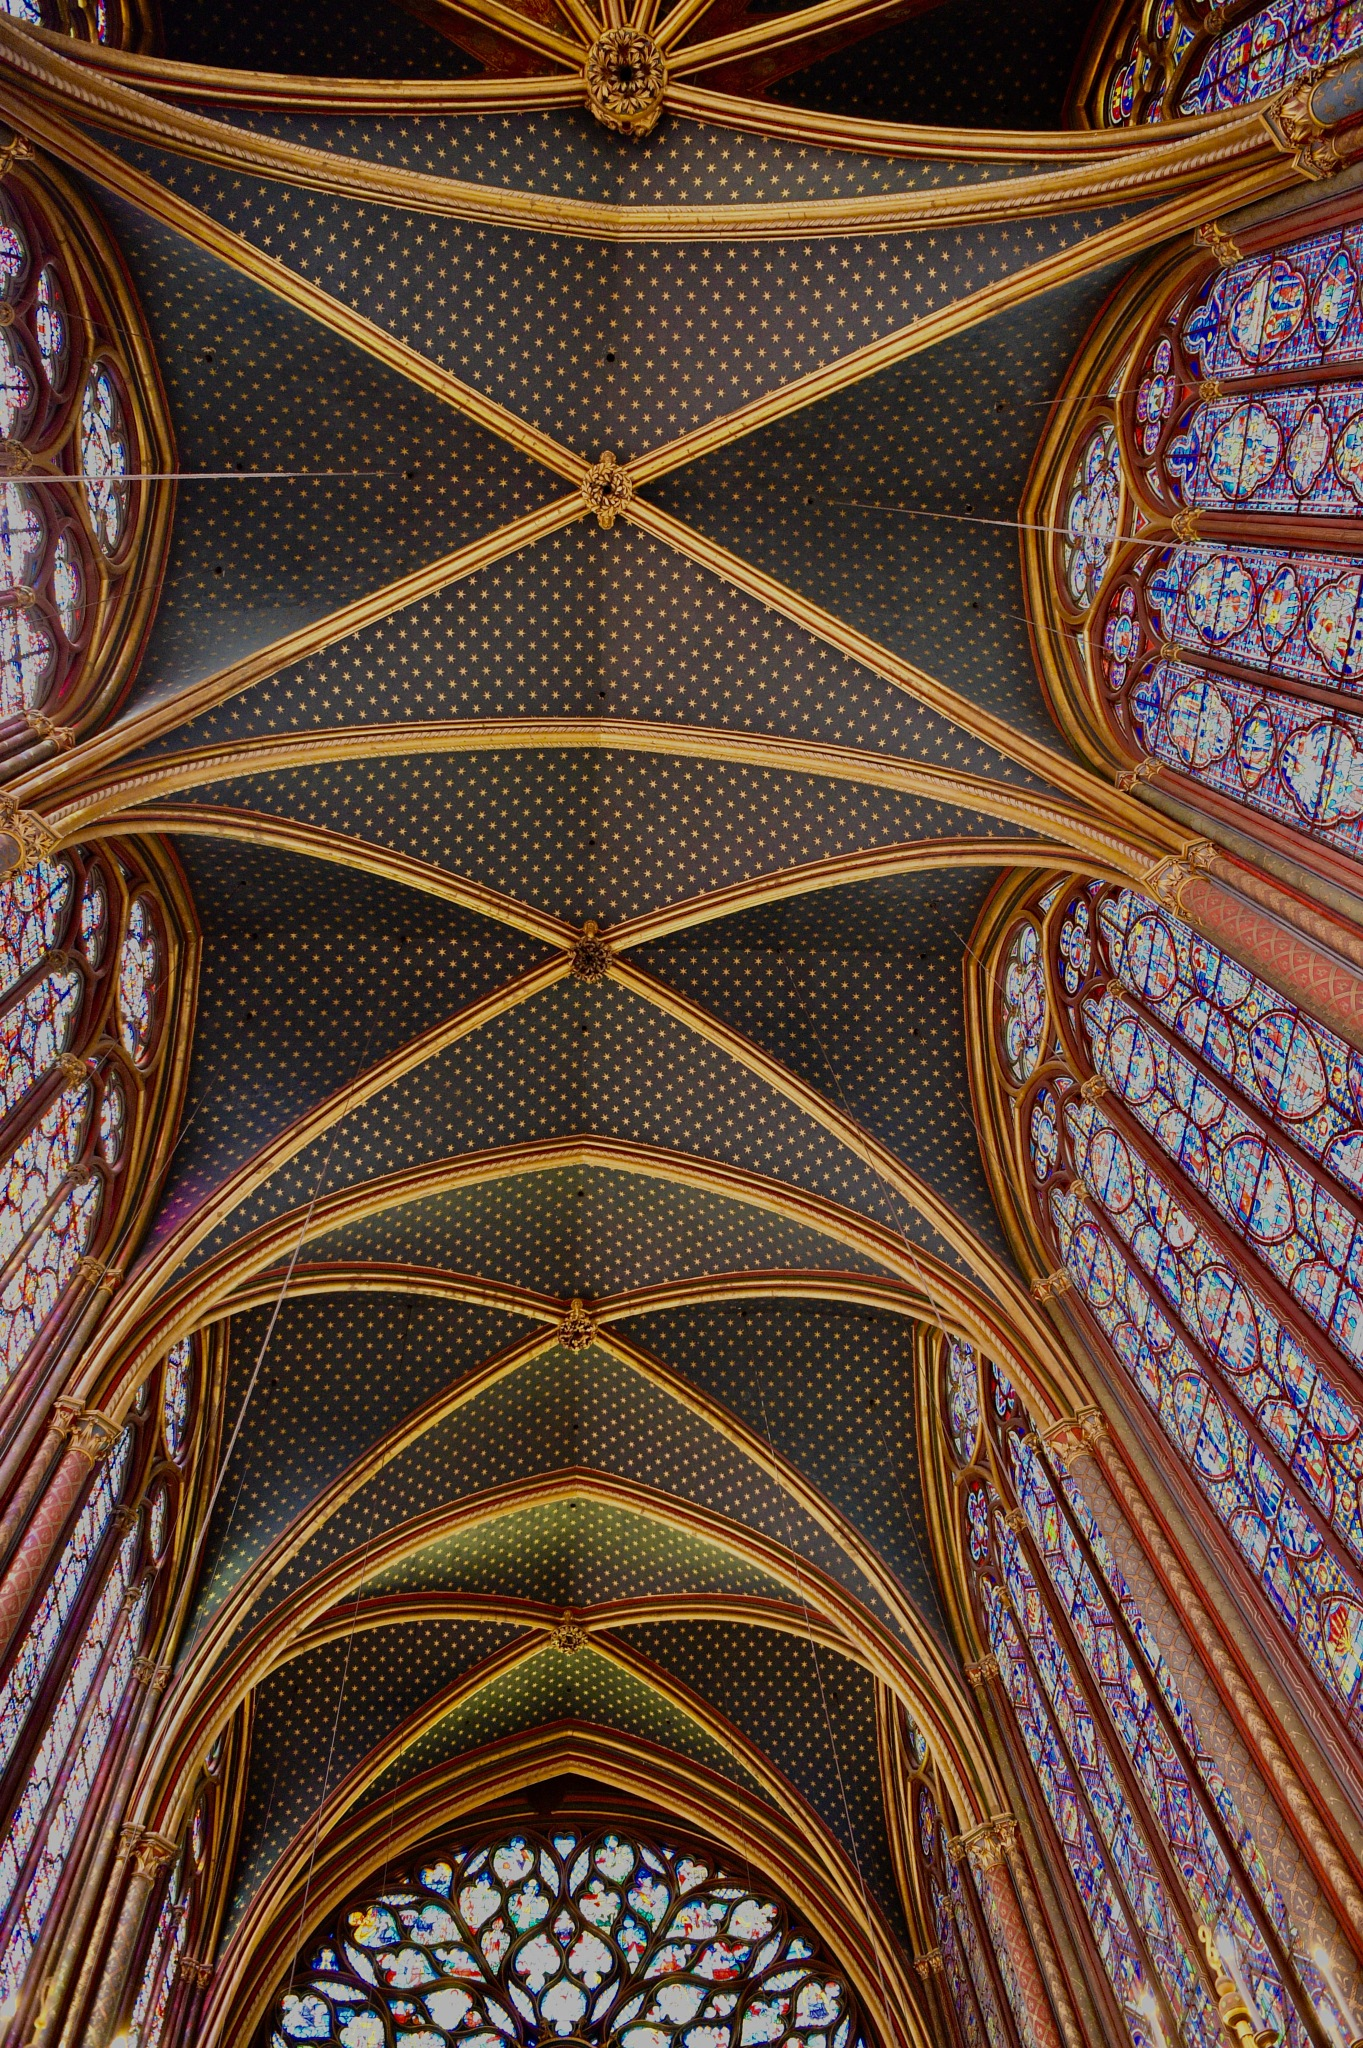 Once again to the incredible Saint Chapelle, Paris 2018 by Robert Malin Young